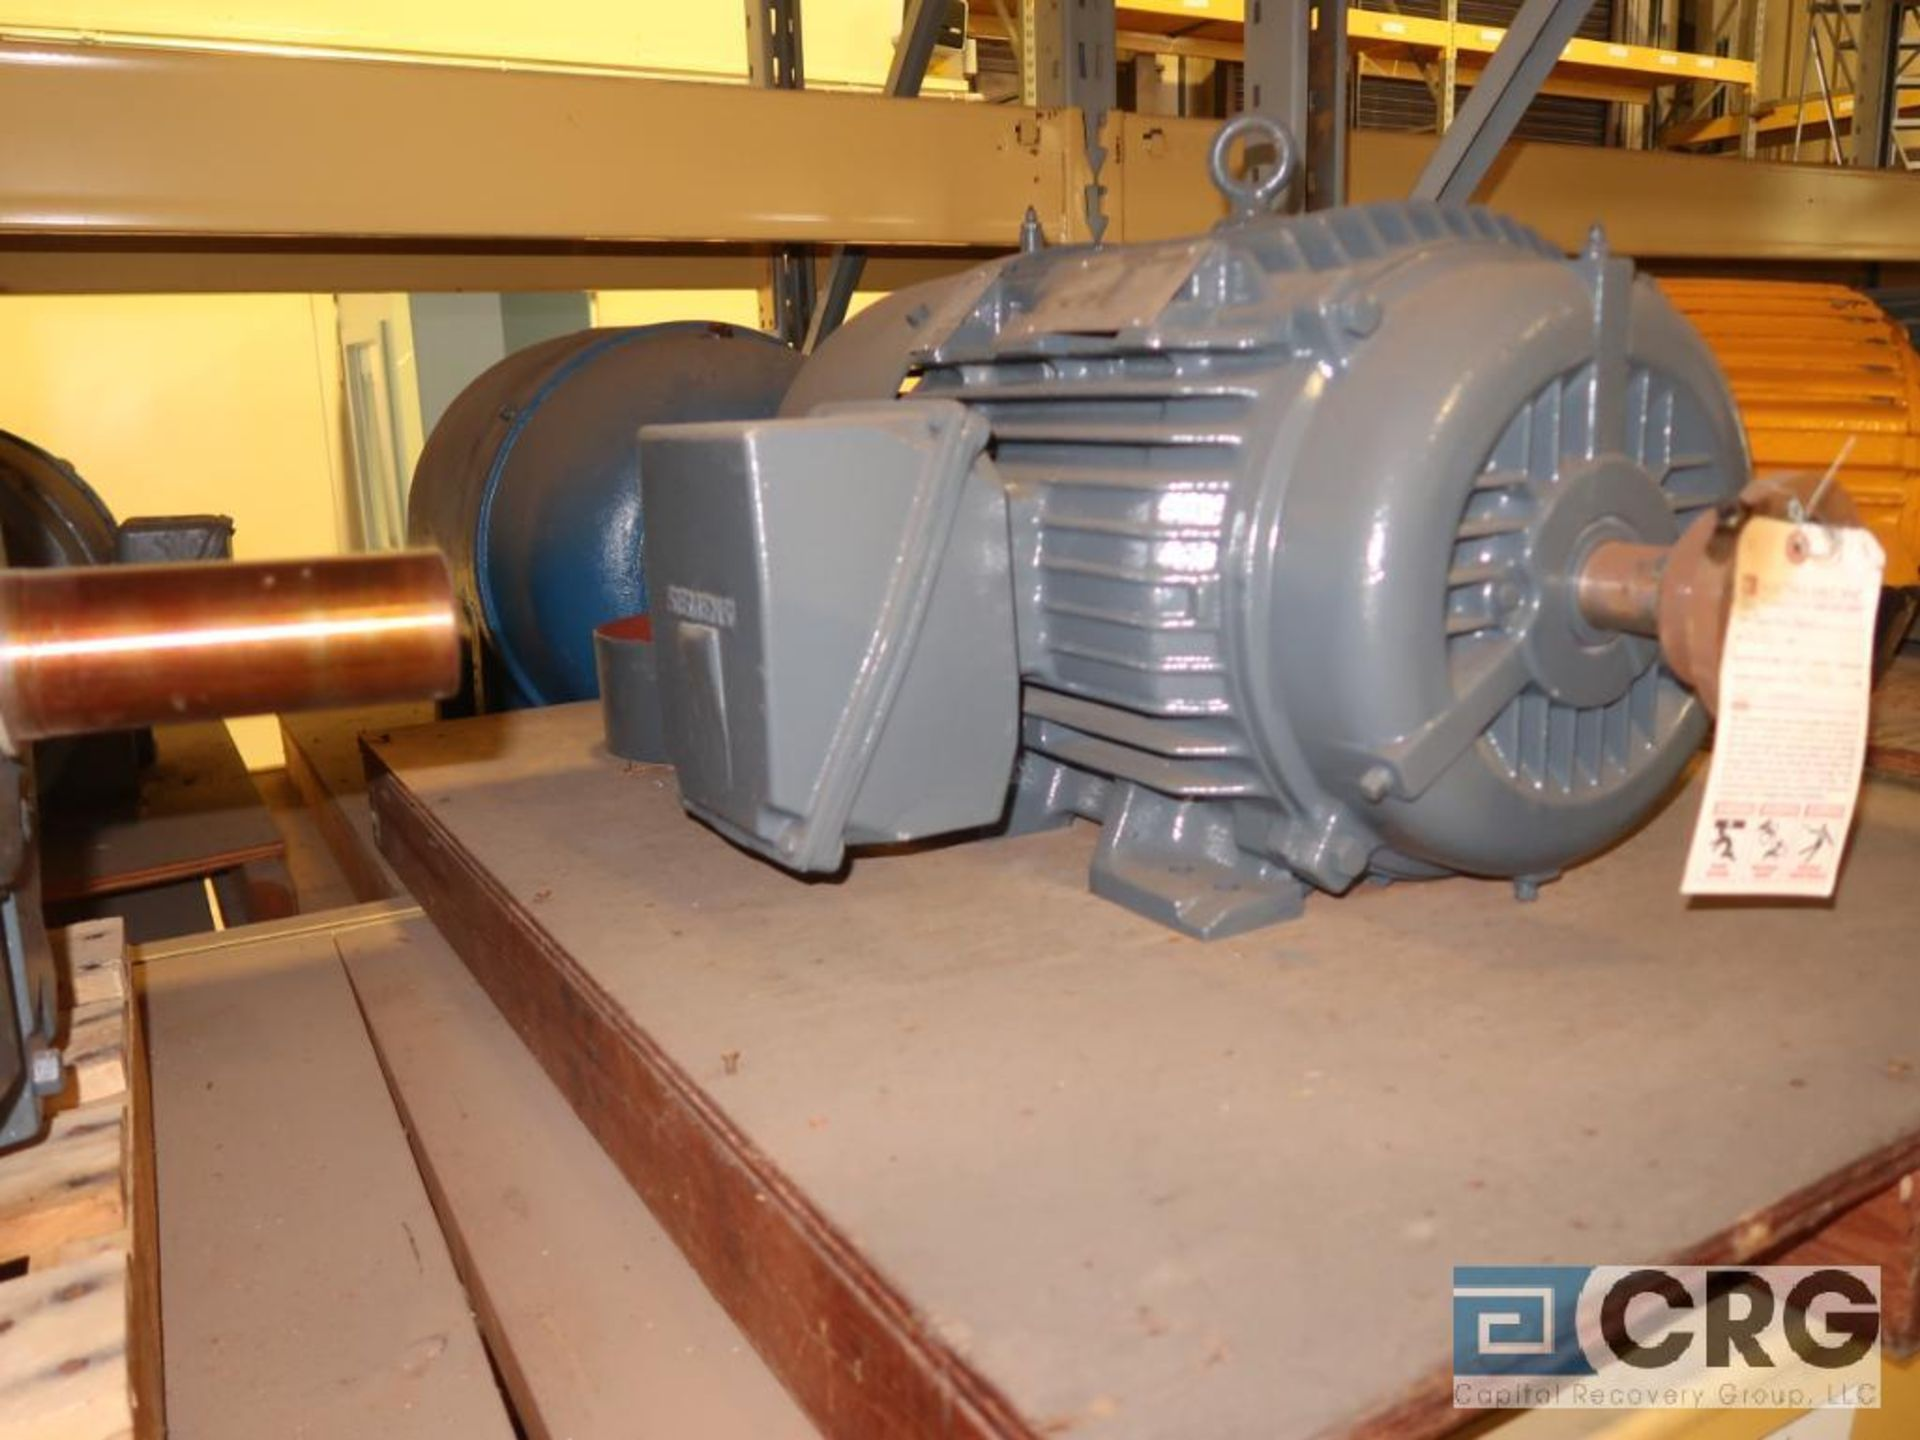 Lot of (29) assorted 15 HP, 10 HP, and 7.5 HP motors on (7) shelves, some with gear drives (Motor - Image 9 of 11